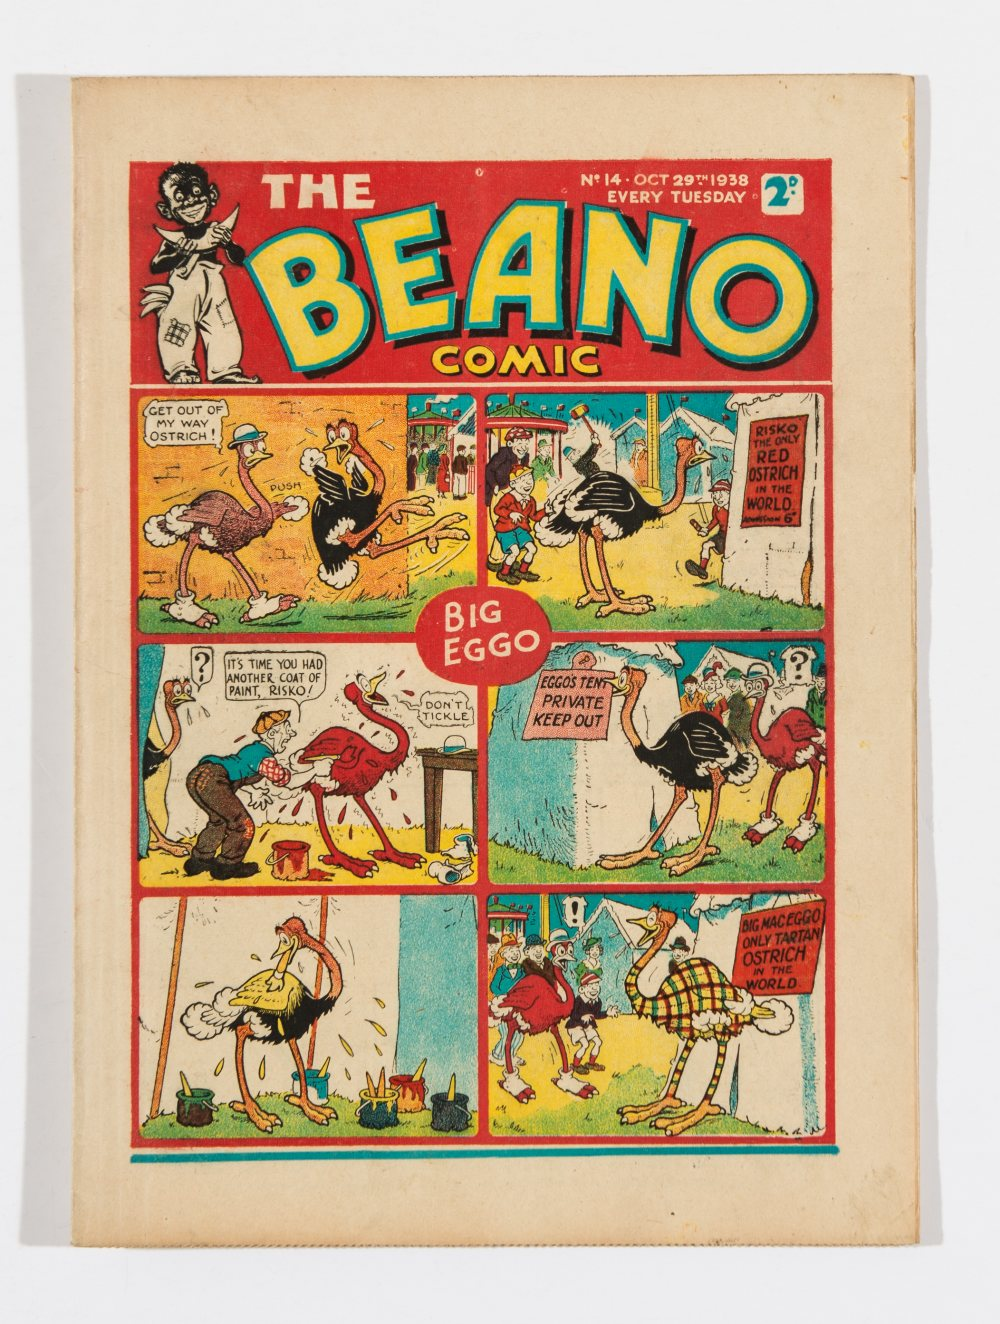 Lot 45 - Beano No 14 (1938). Bright, fresh covers, cream pages. Only a few copies known to exist [vfn]